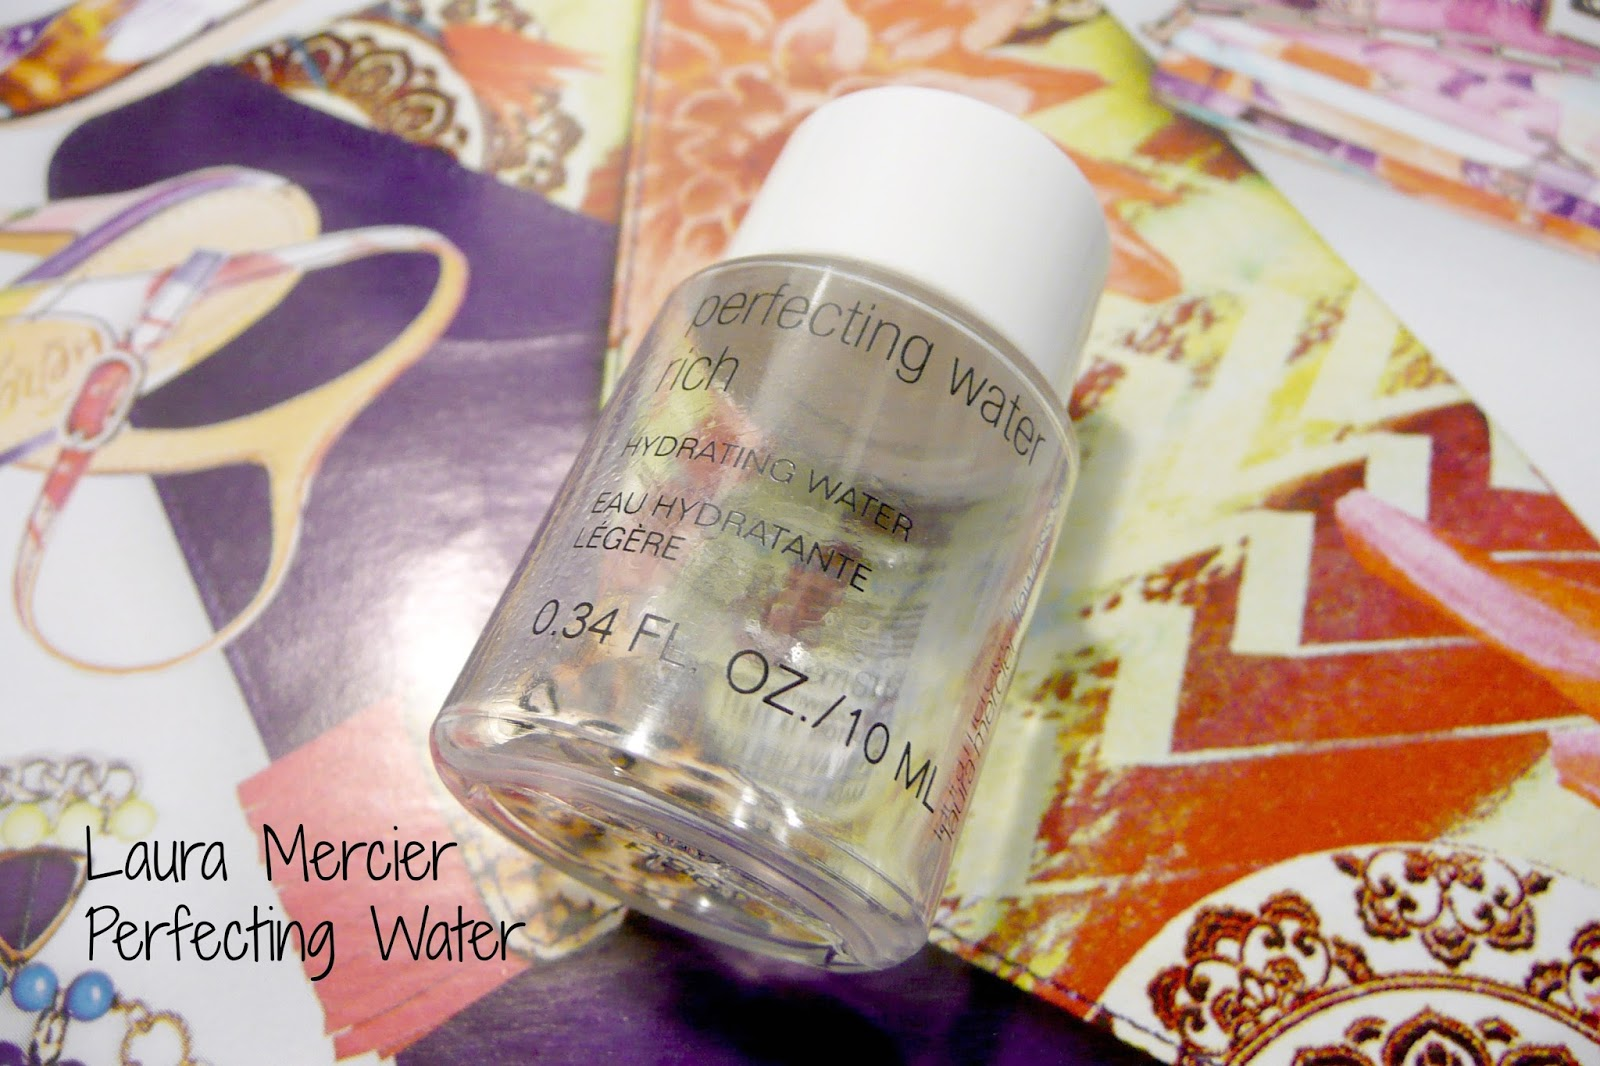 Laura Mercier Perfecting Water Review